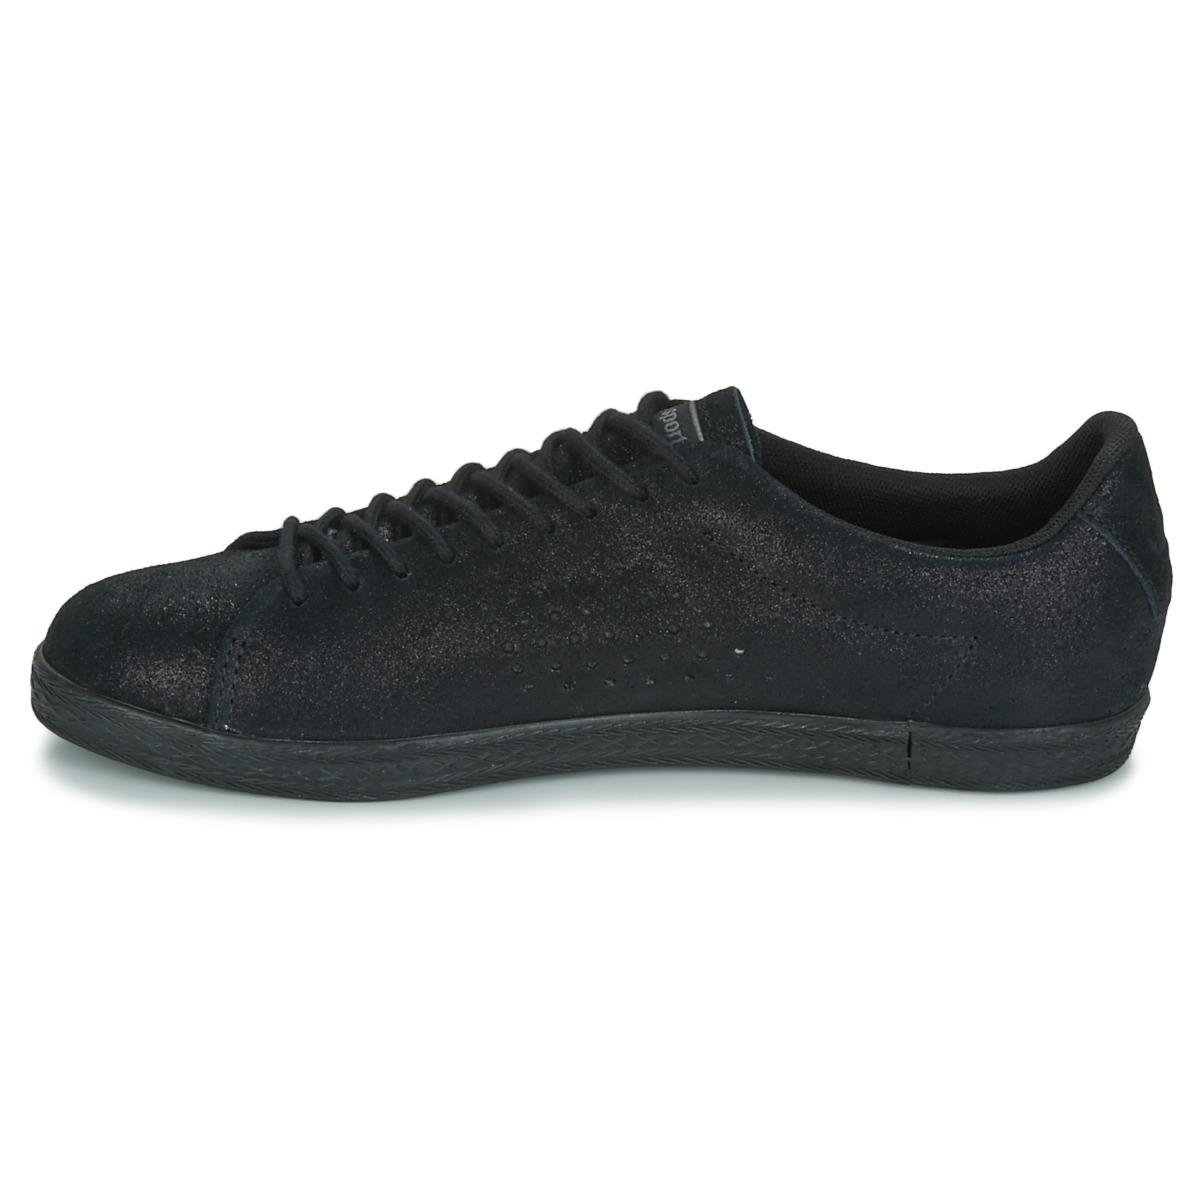 Le Coq Sportif Charline Metallic Suede Shoes (trainers) in Black